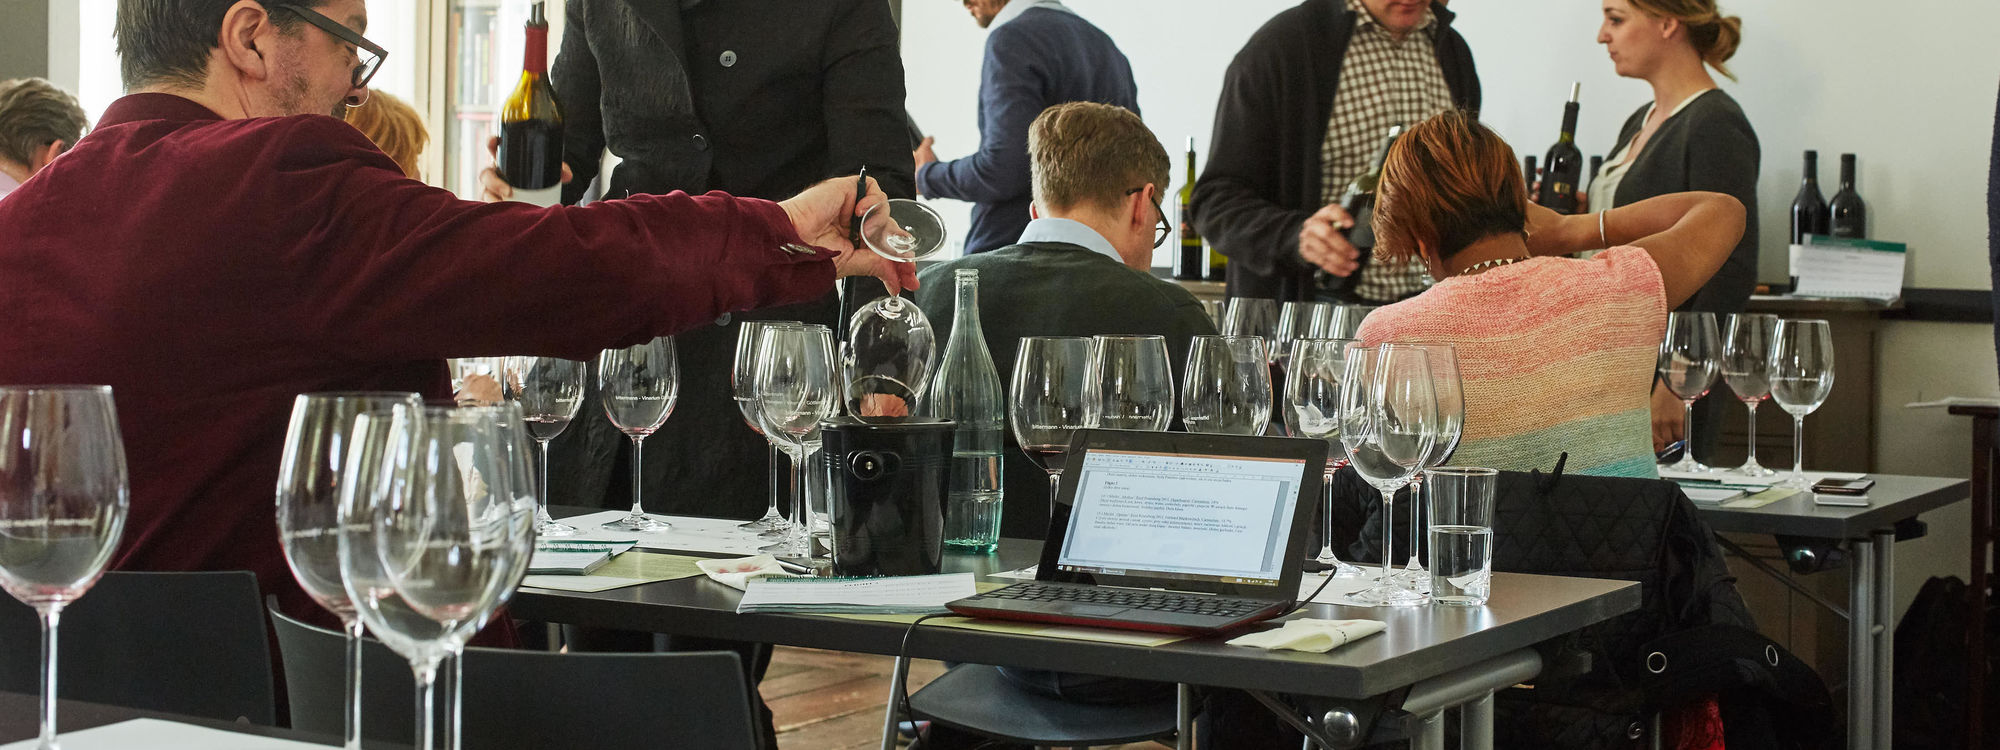 This picture shows a man during a seated tasting